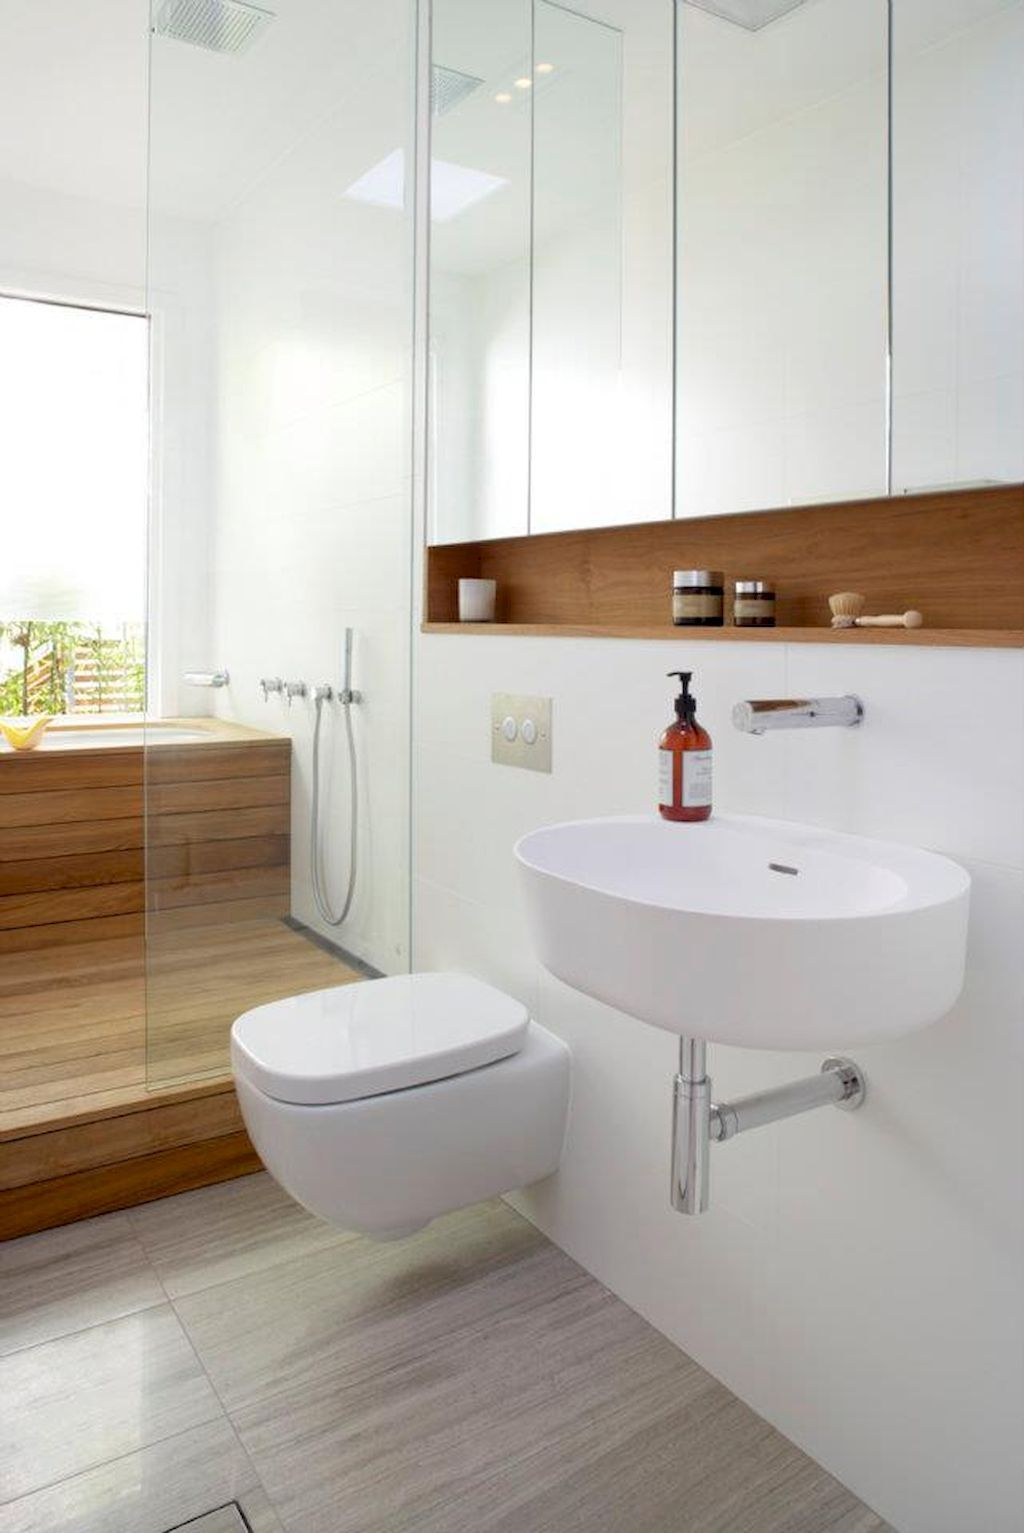 40 Minimalist Bathroom Remodel Ideas on A Budget | Minimalist ...